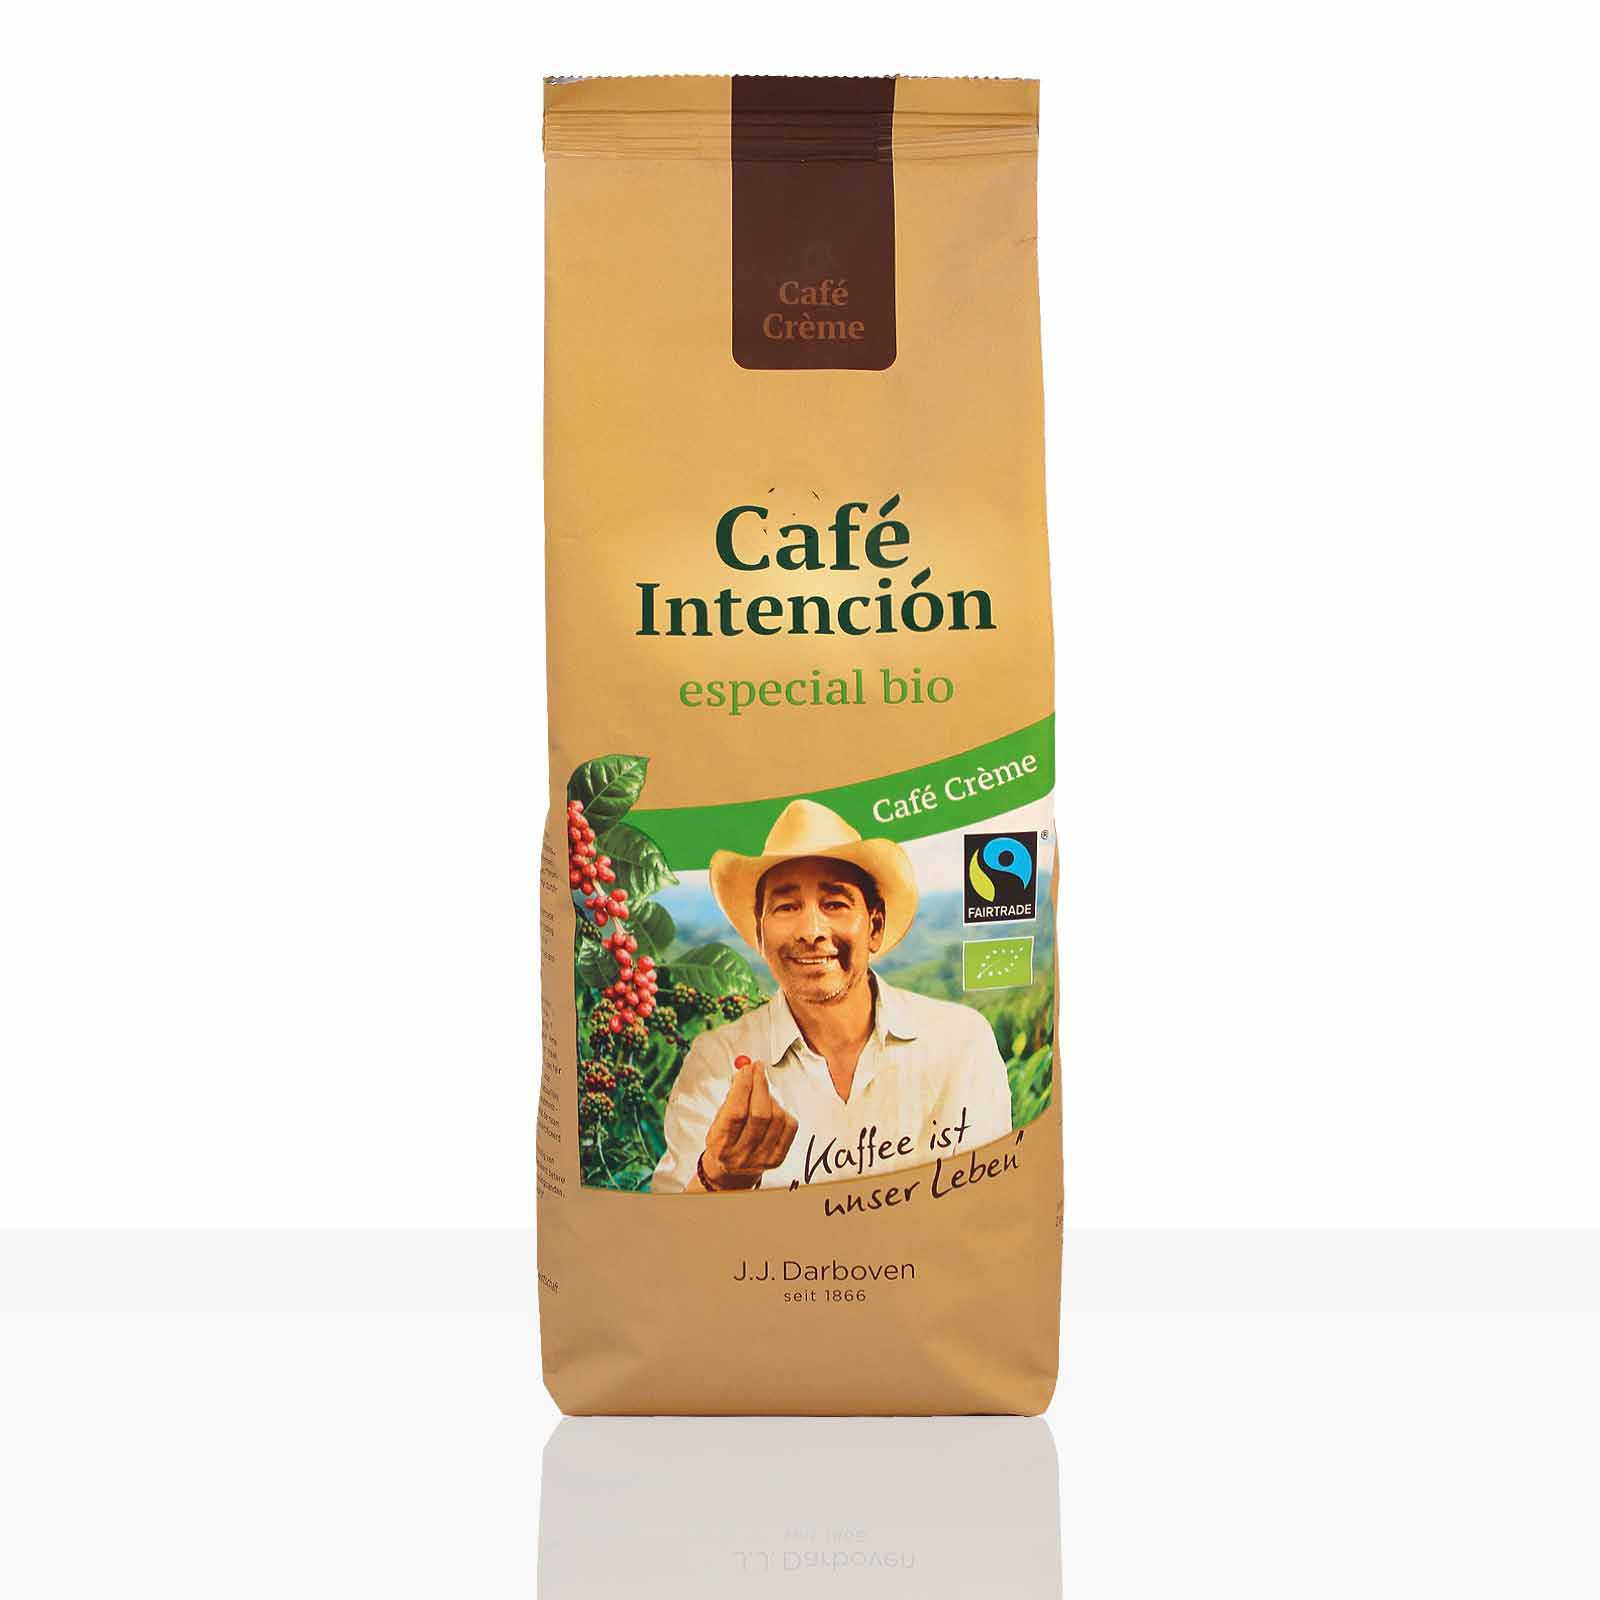 Darboven Cafe Creme Intencion especial Fairtrade - 12 x 500g ganze Kaffee-Bohne